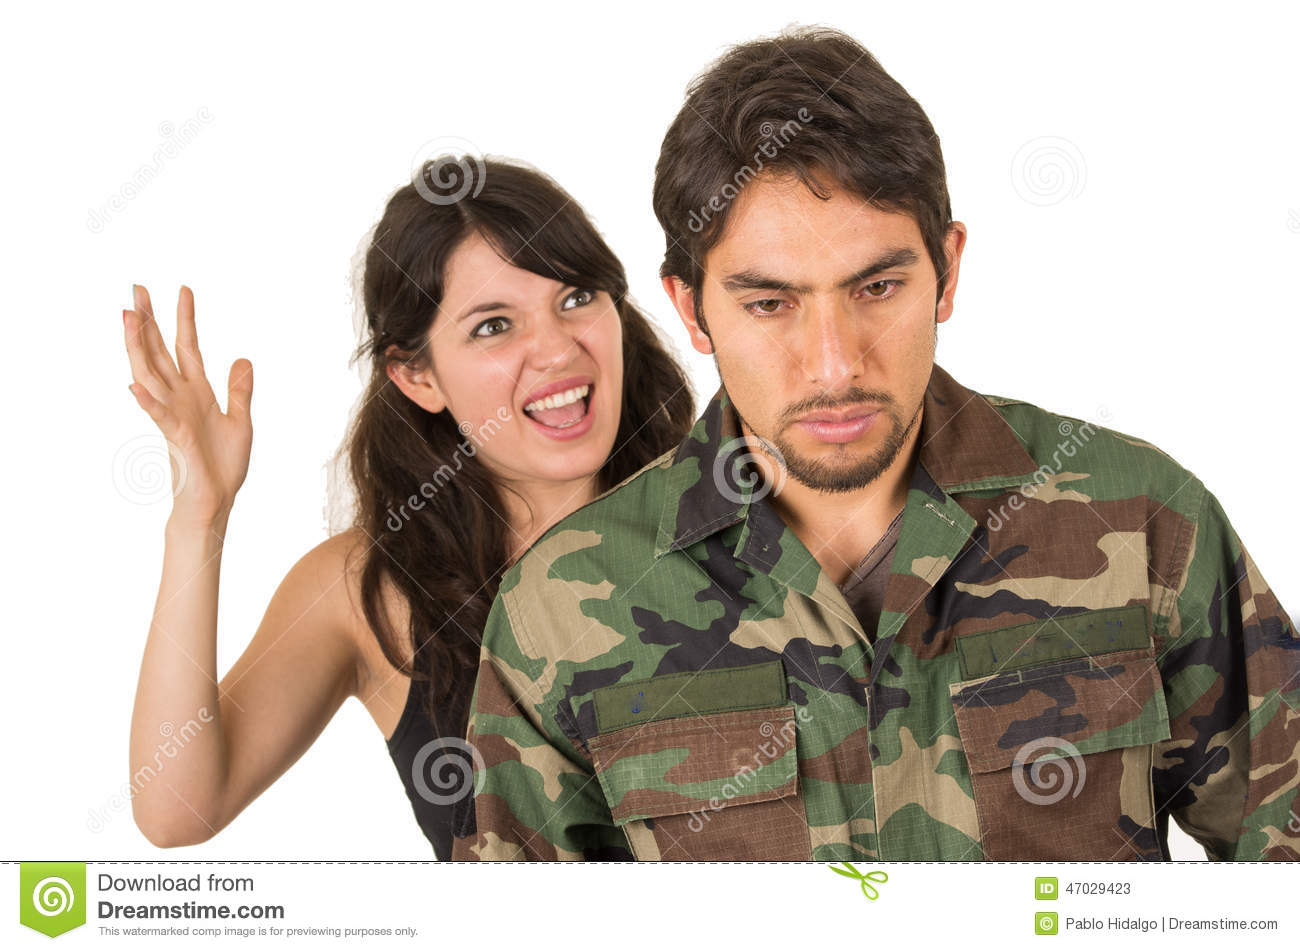 A ptsd dating veteran with PTSD And